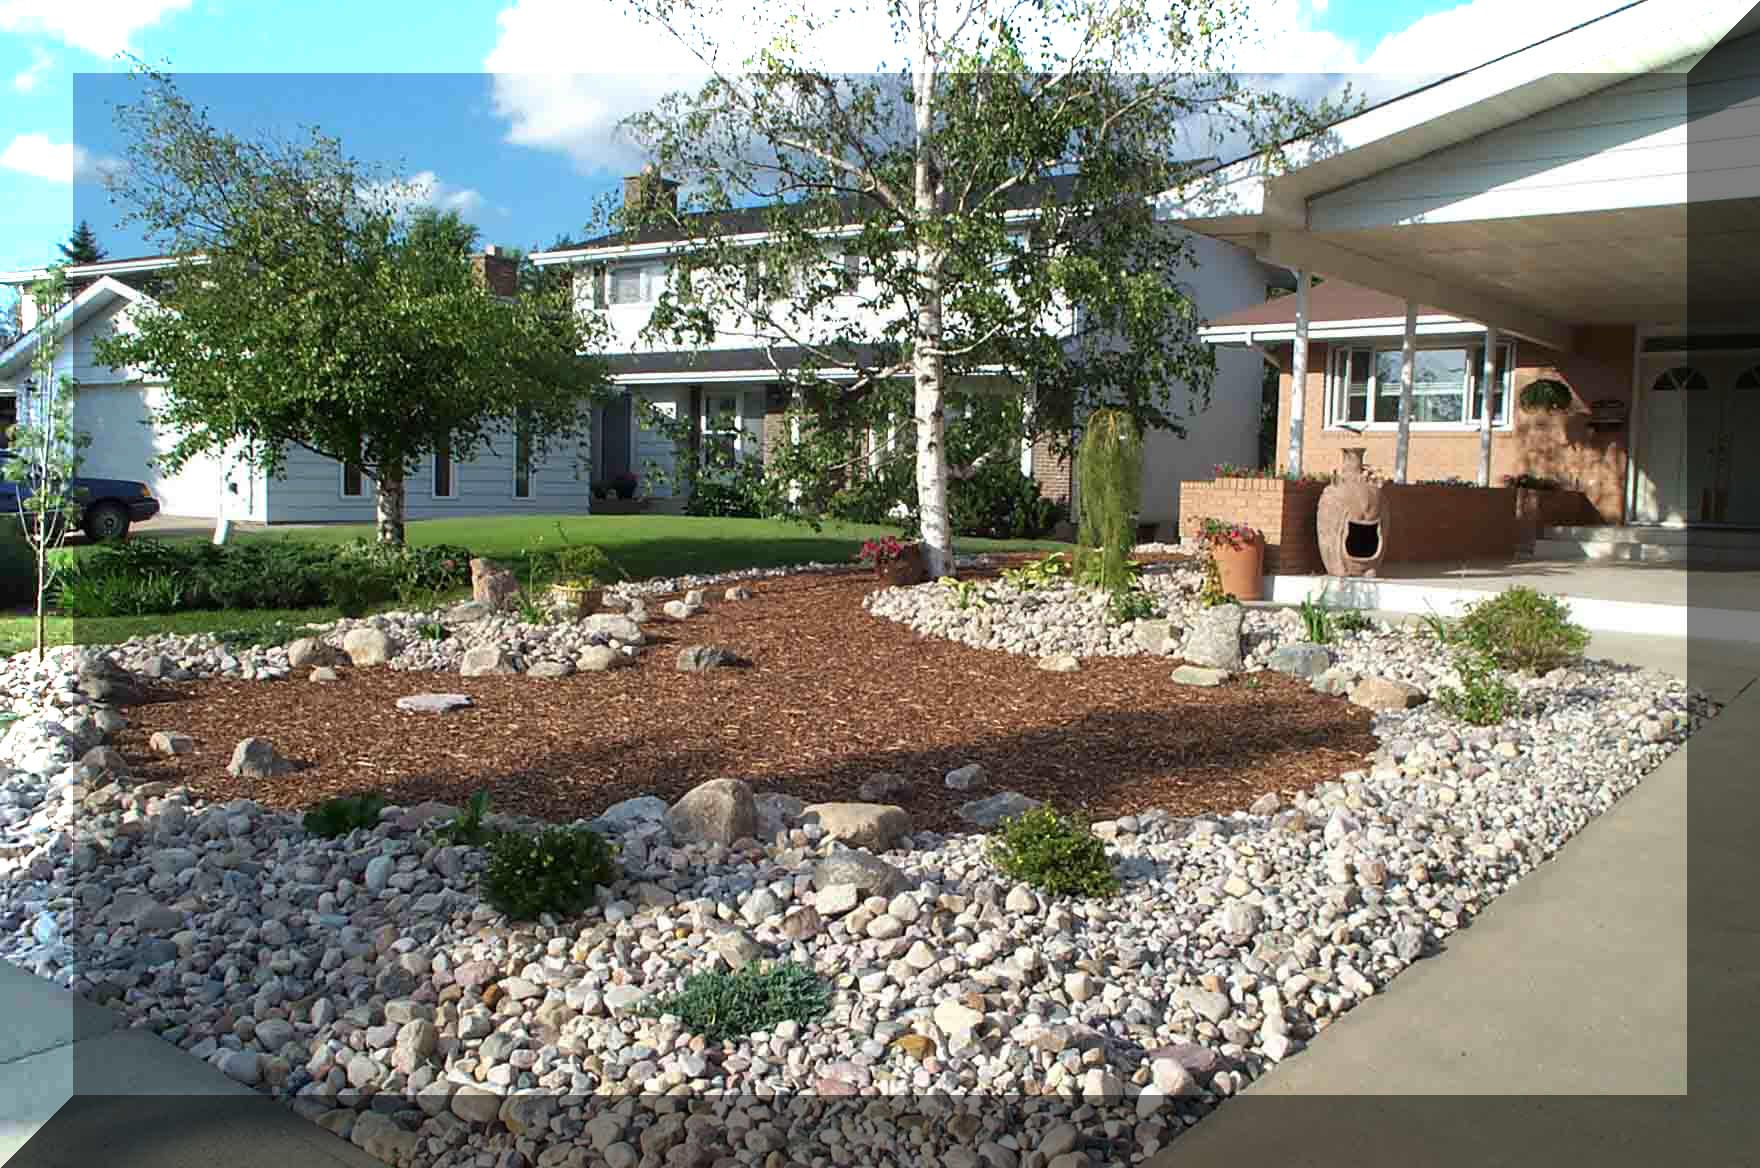 Charming Front Yard Xeriscape Ideas Part - 6: Small Landscape Bed Xeriscape Rocks + Front Yard - Google Search | Zahrada  | Pinterest | Front Yards, Yards And Landscaping